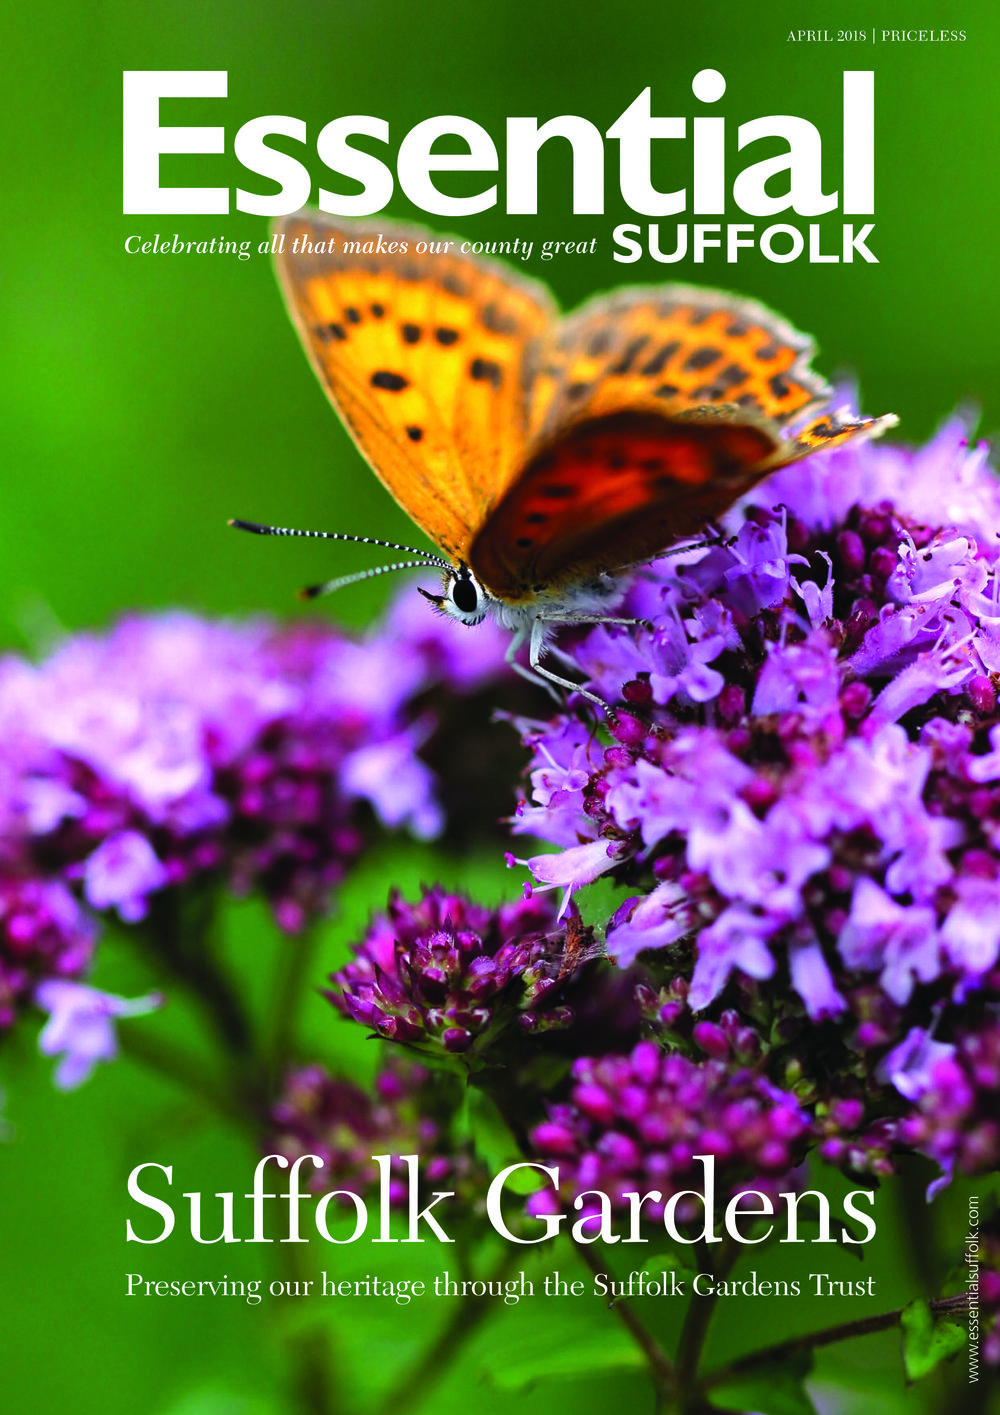 Essential Suffolk April 2018